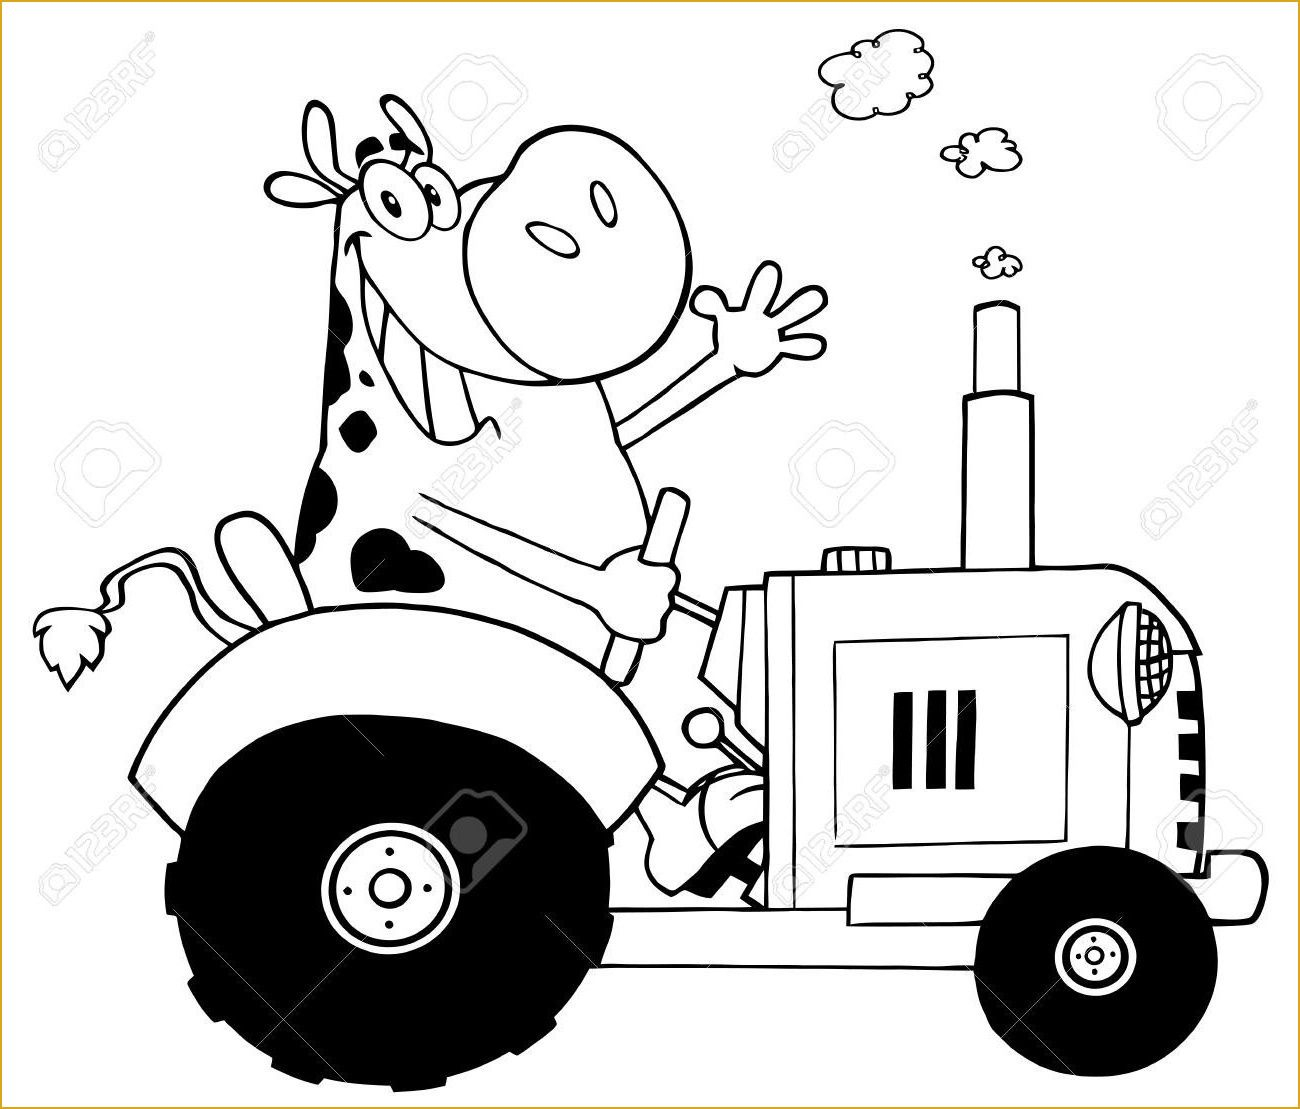 Coloriage Tracteur New Holland Facile Coloriage Tracteur New intérieur Sam Le Tracteur Dessin Anime